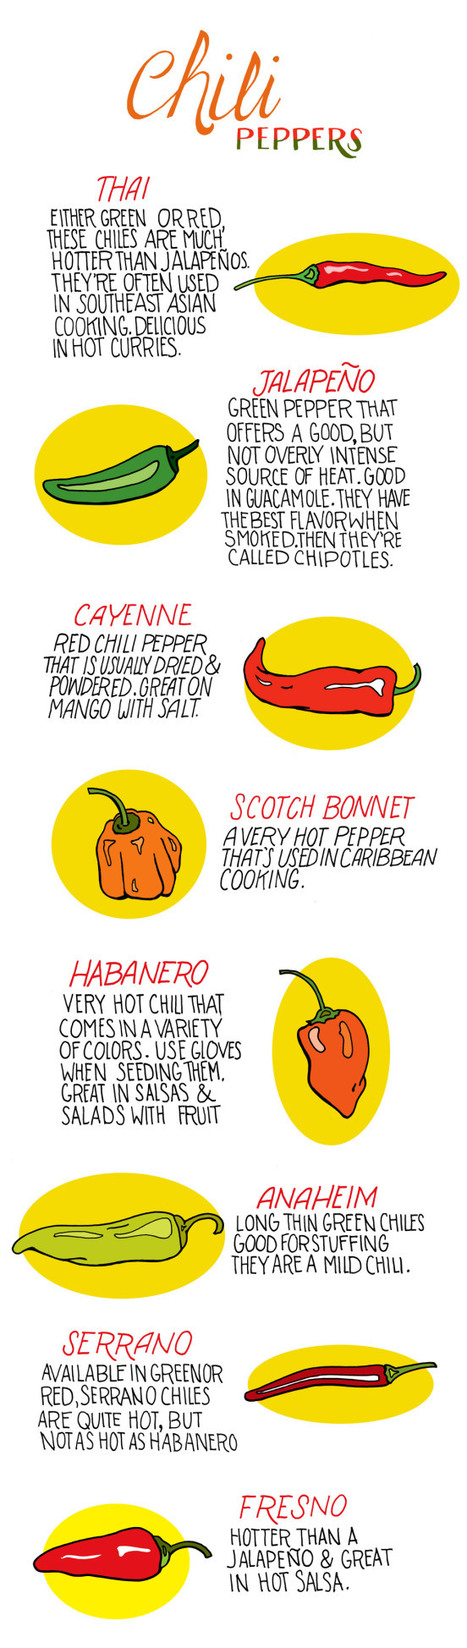 Chili Pepper Heat Index [Infographic] - BestInfographics.co | The Best Infographics | Scoop.it